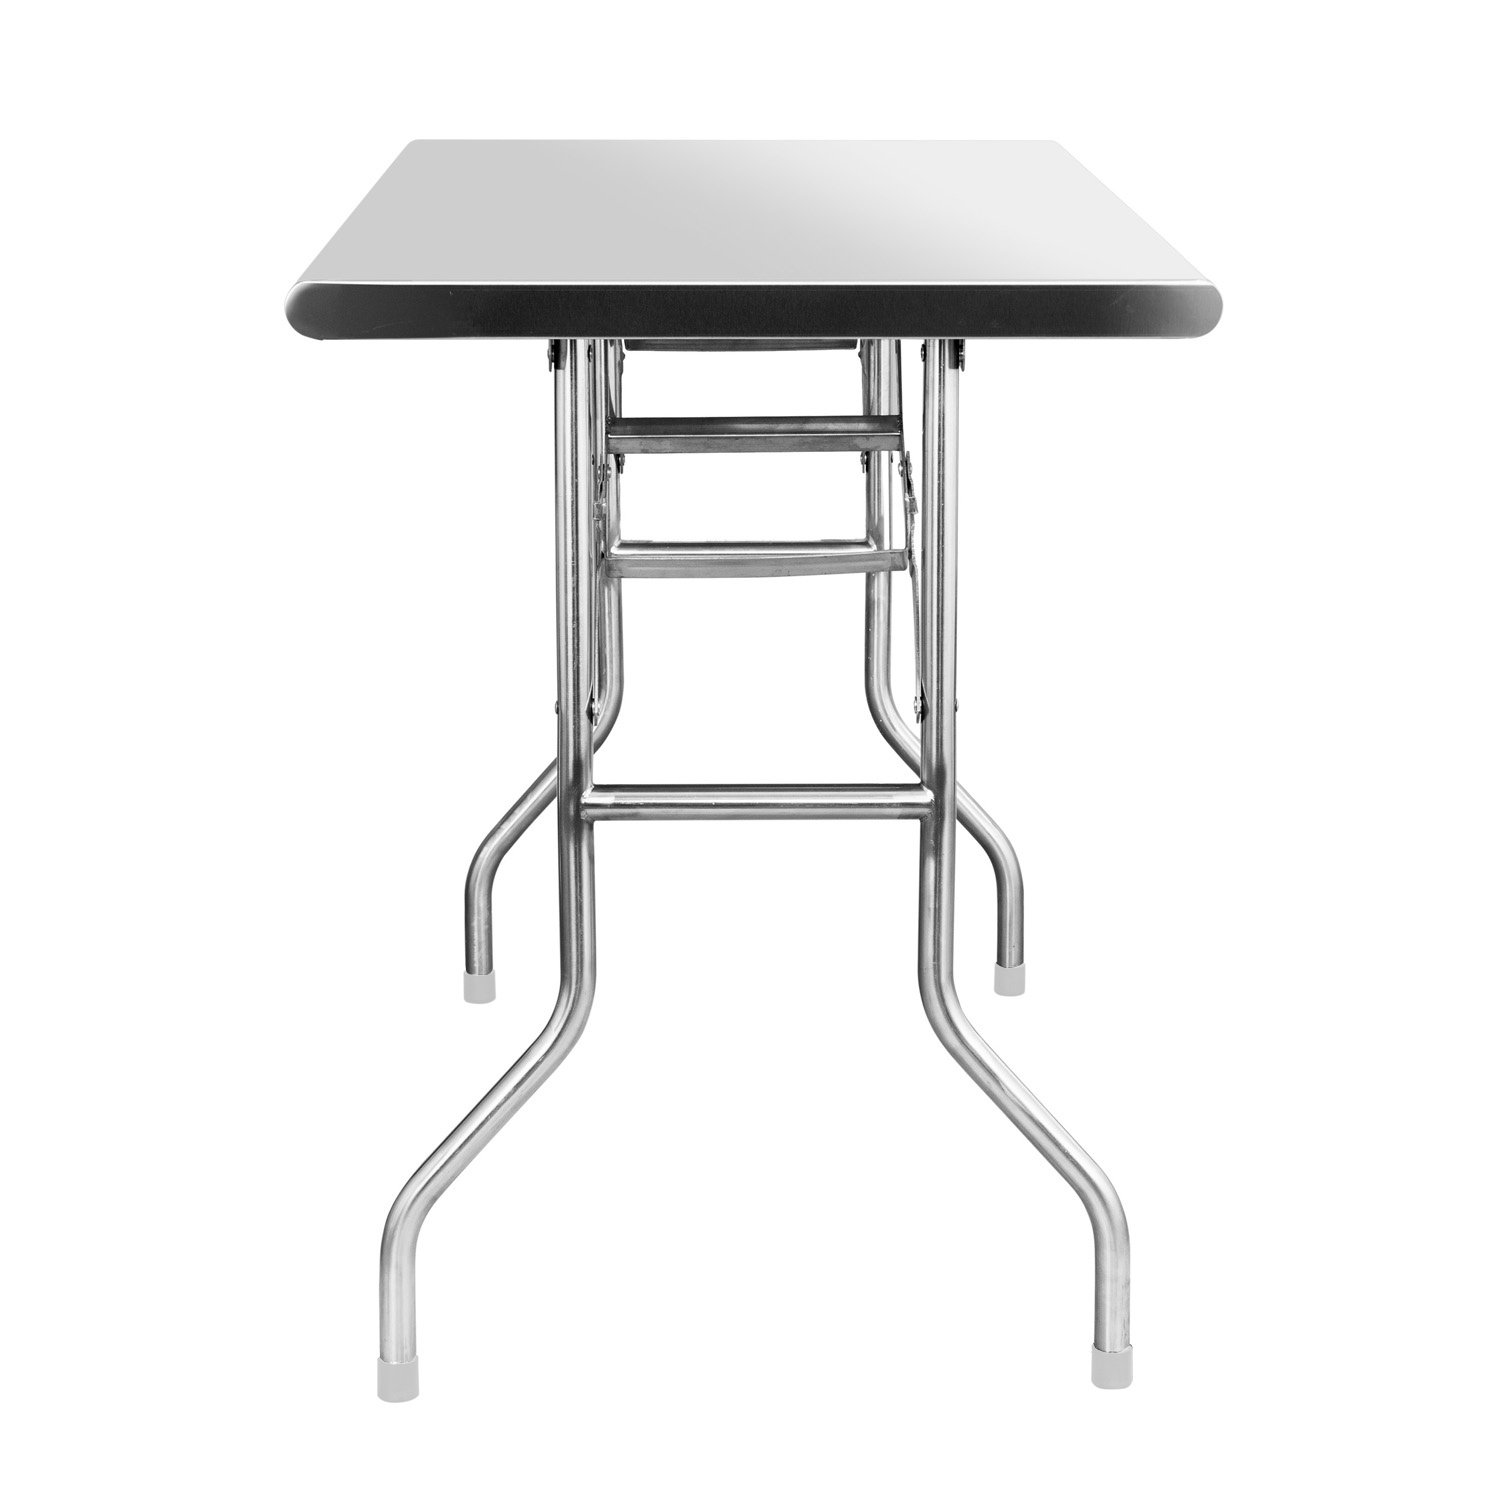 Royal Gourmet Stainless Steel Folding Work Table, 48'' L x 24'' W by Royal Gourmet (Image #2)